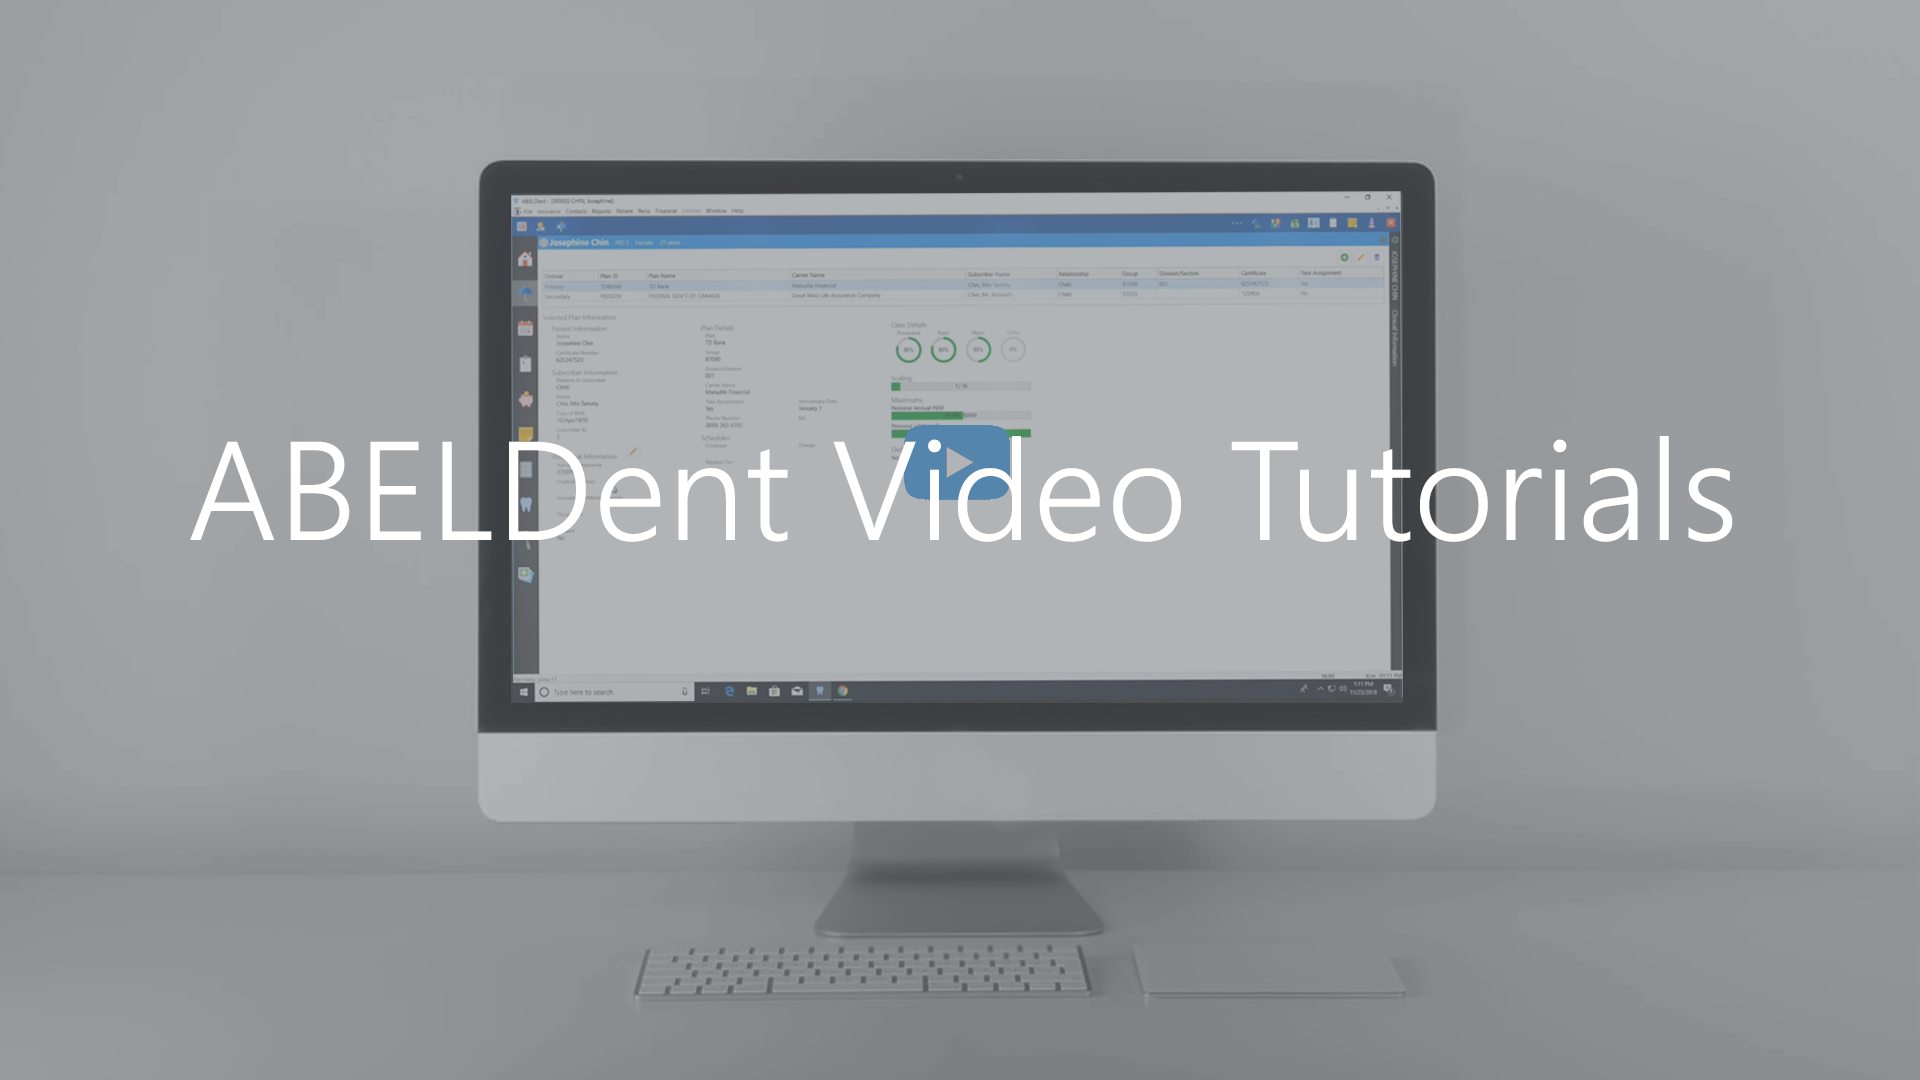 ABELDent's Exciting New Features: Video Tutorials